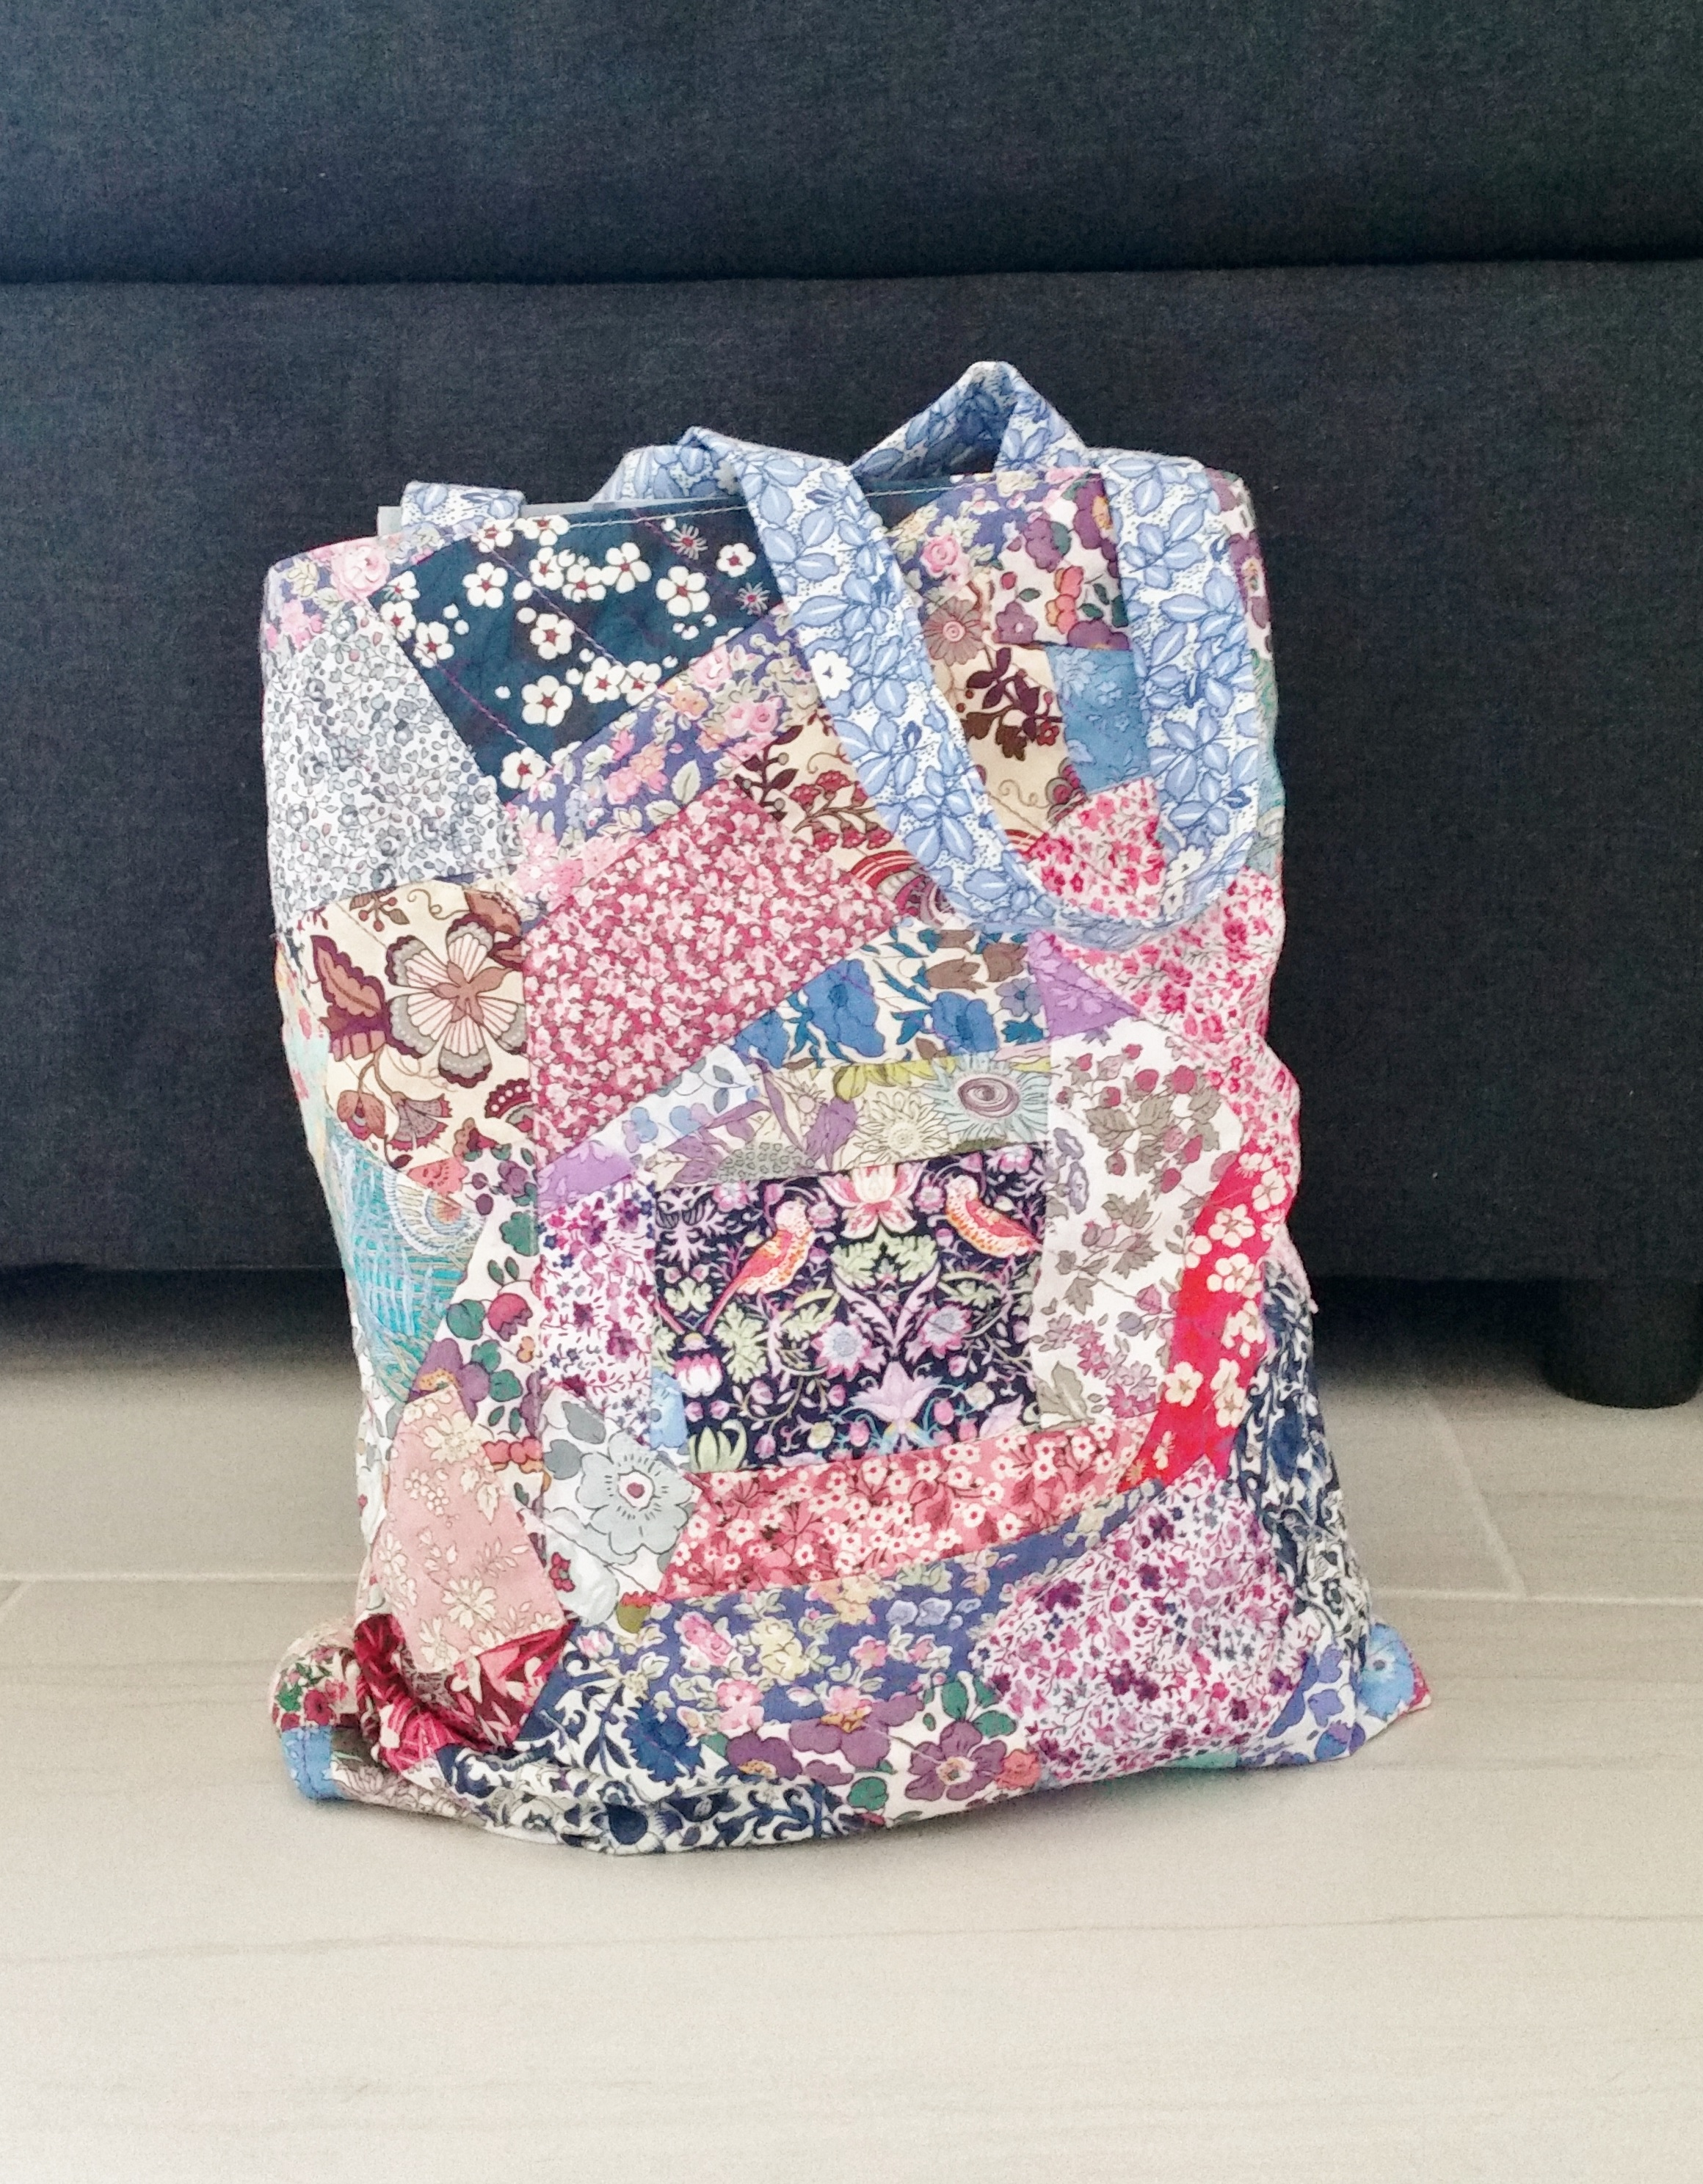 Diy Liberty London Patchwork Tote Bag